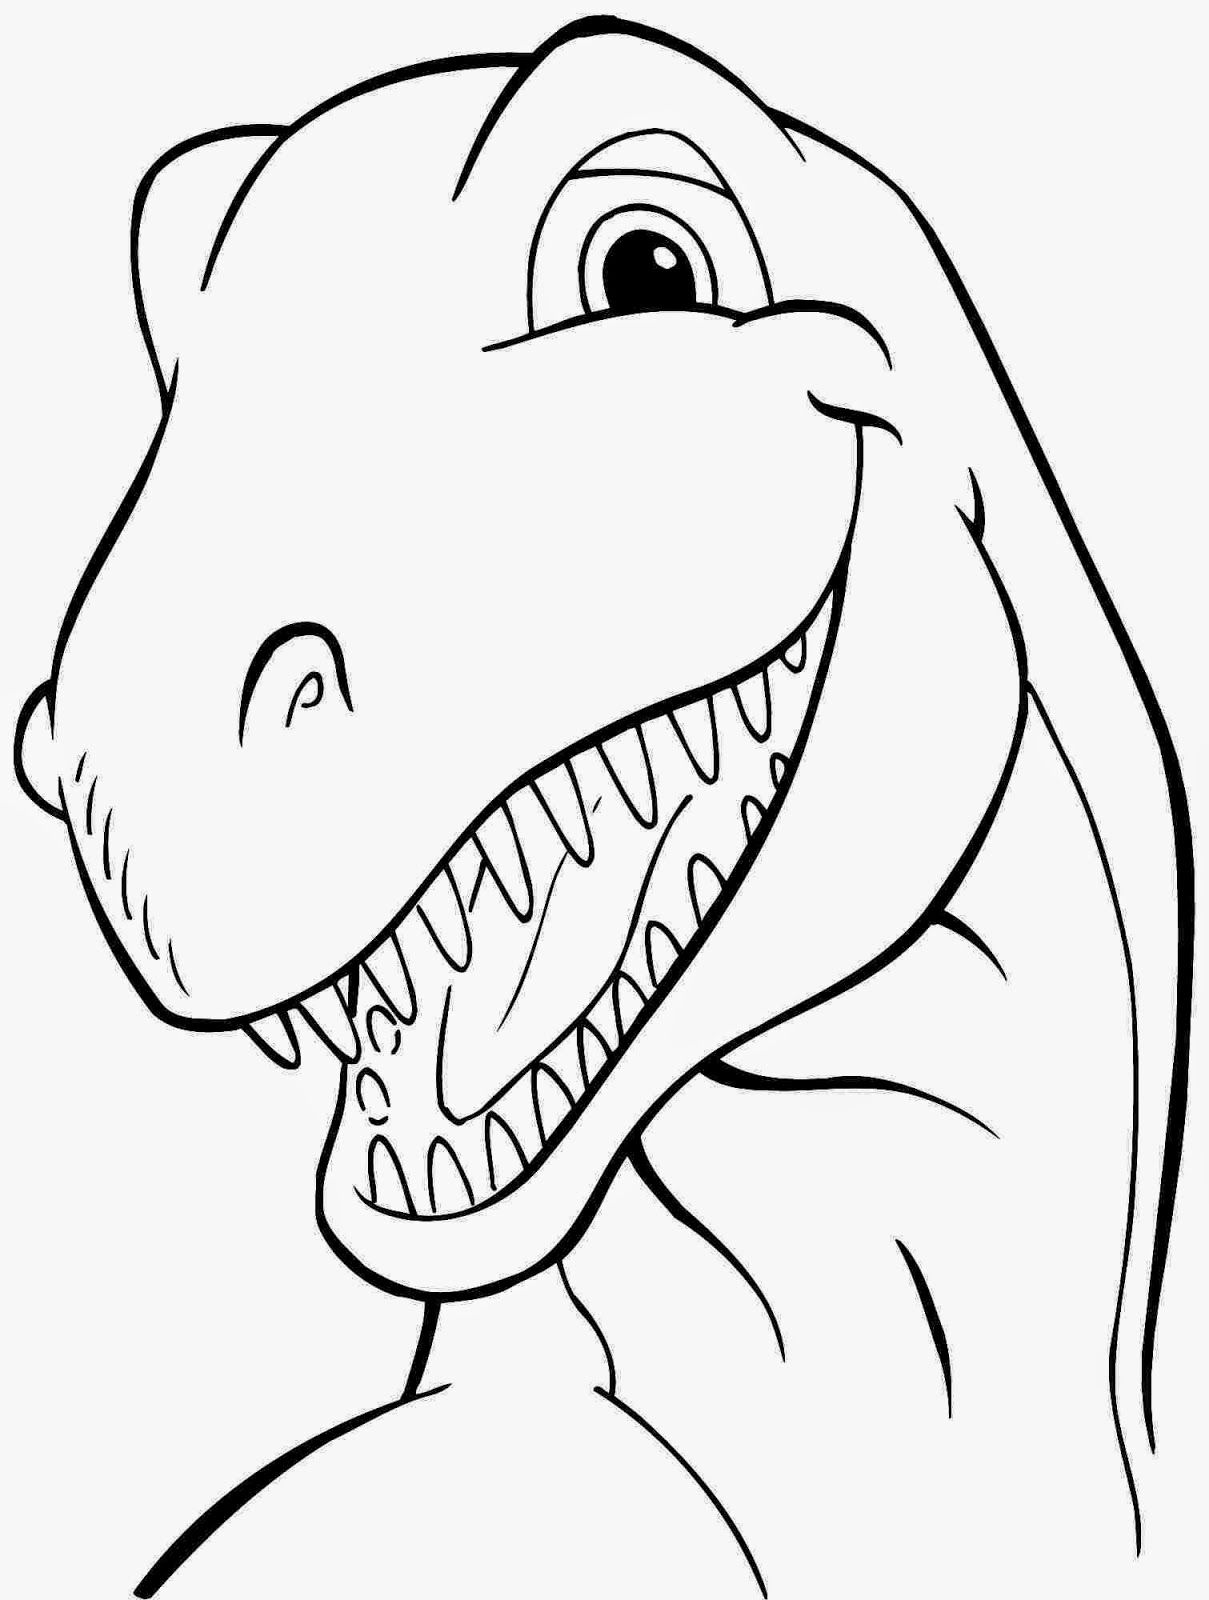 Coloring Pages Dinosaur Free Printable Coloring Pages Dinosaur Coloring Sheets Dinosaur Coloring Pages Dinosaur Coloring